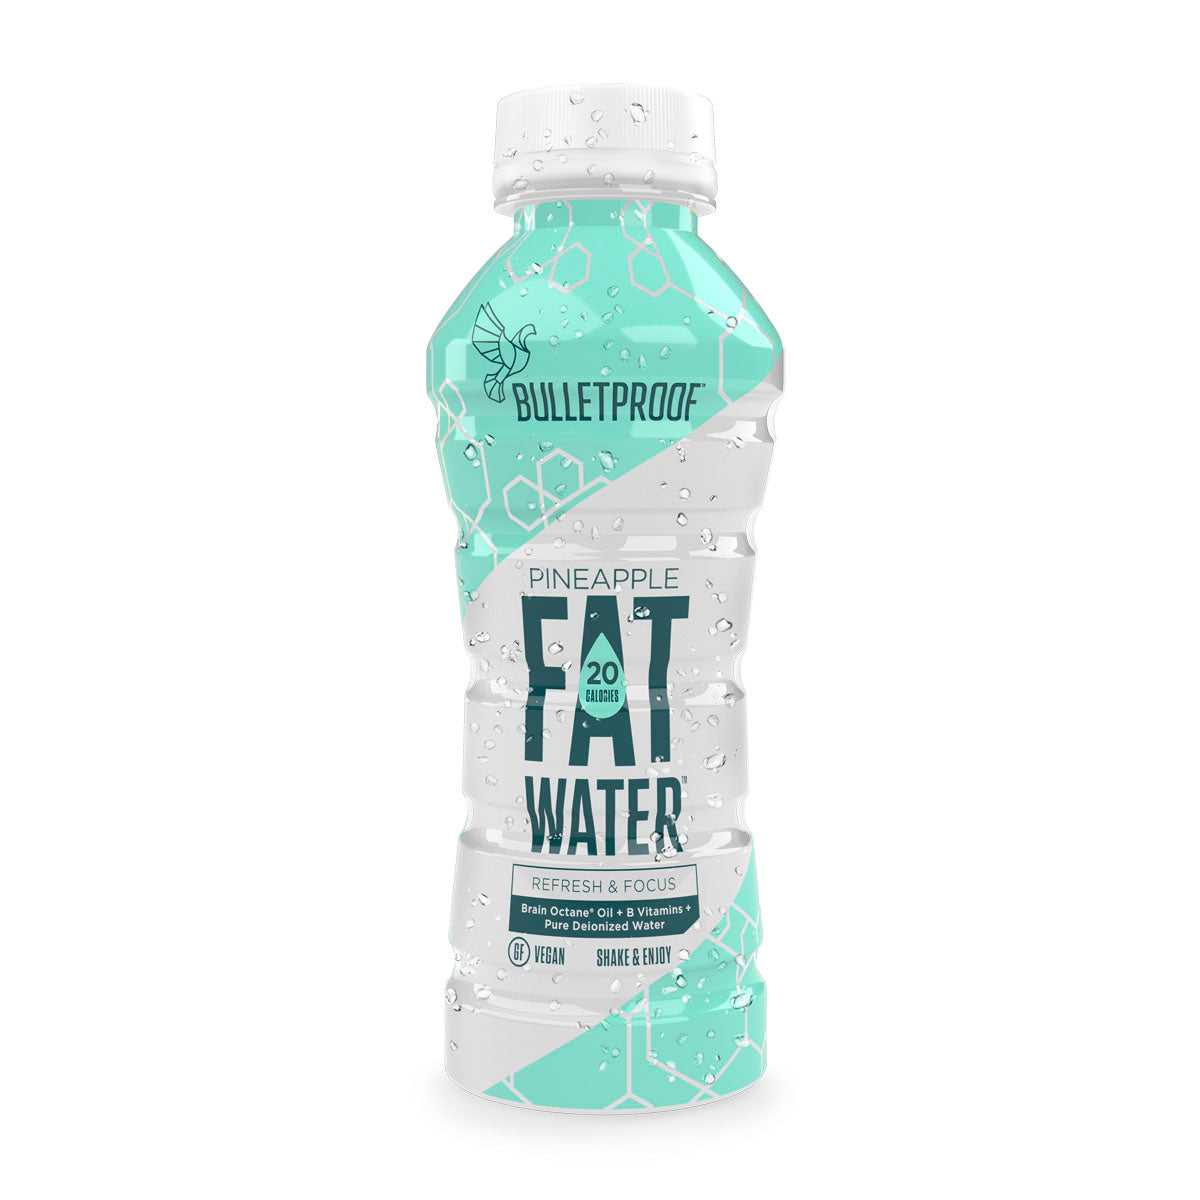 Bulletproof FATwater Pineapple 12ct Case